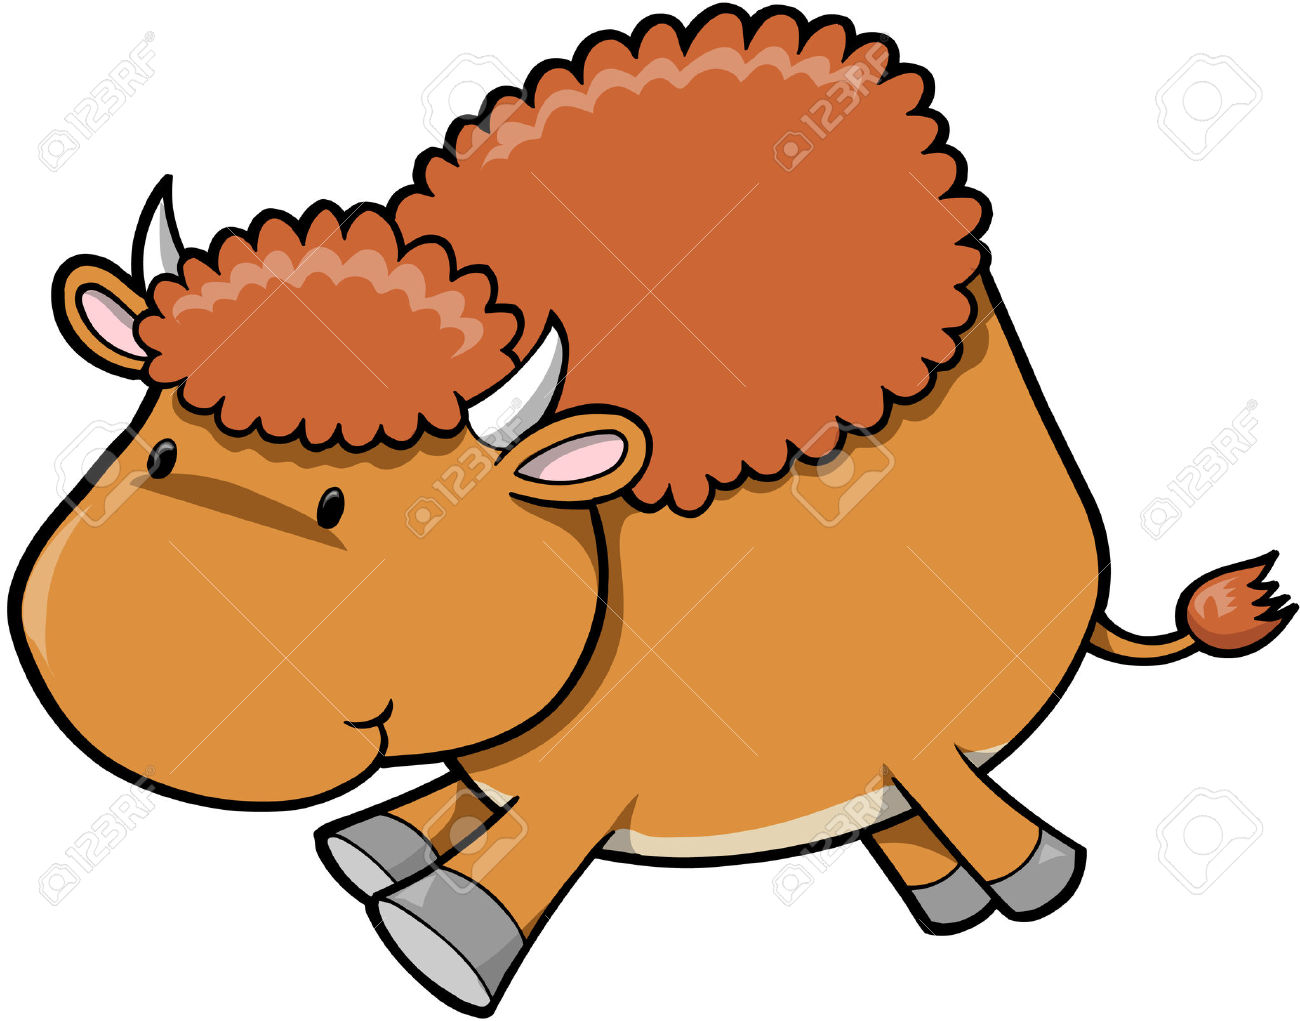 Free cartoon cliparts download. Bison clipart cute